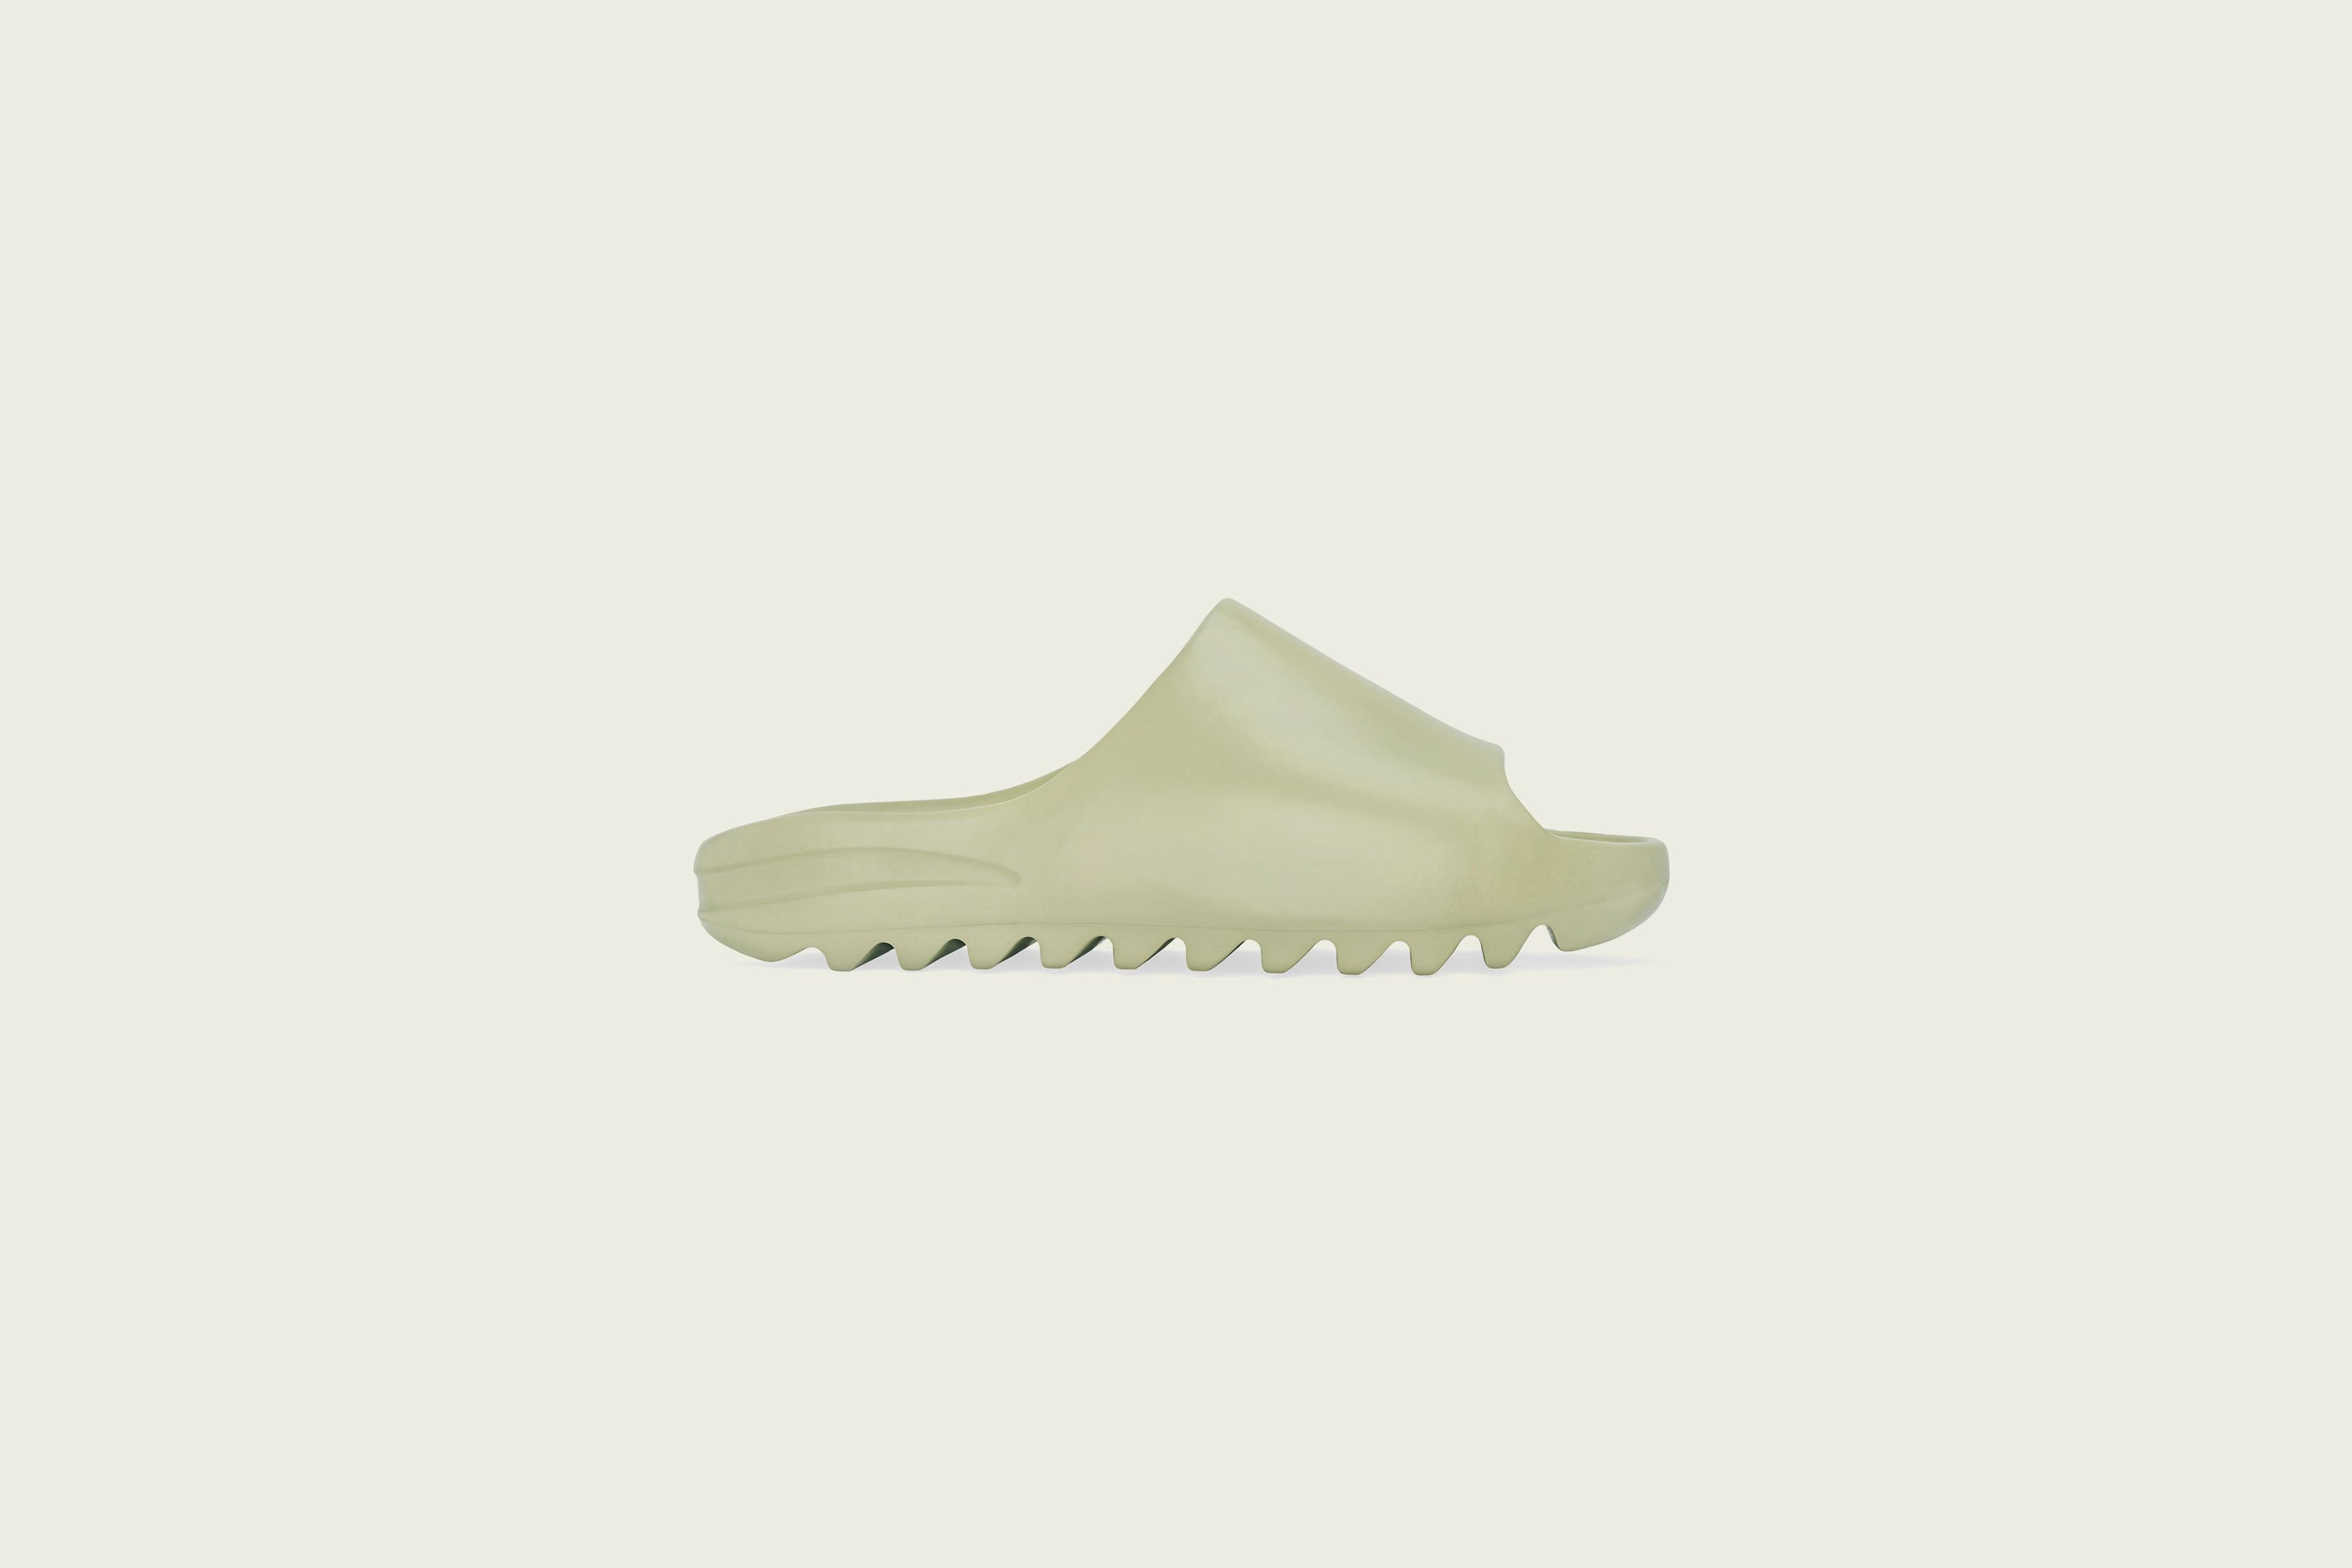 adidas - Yeezy Slide - Resin/Resin - Up There